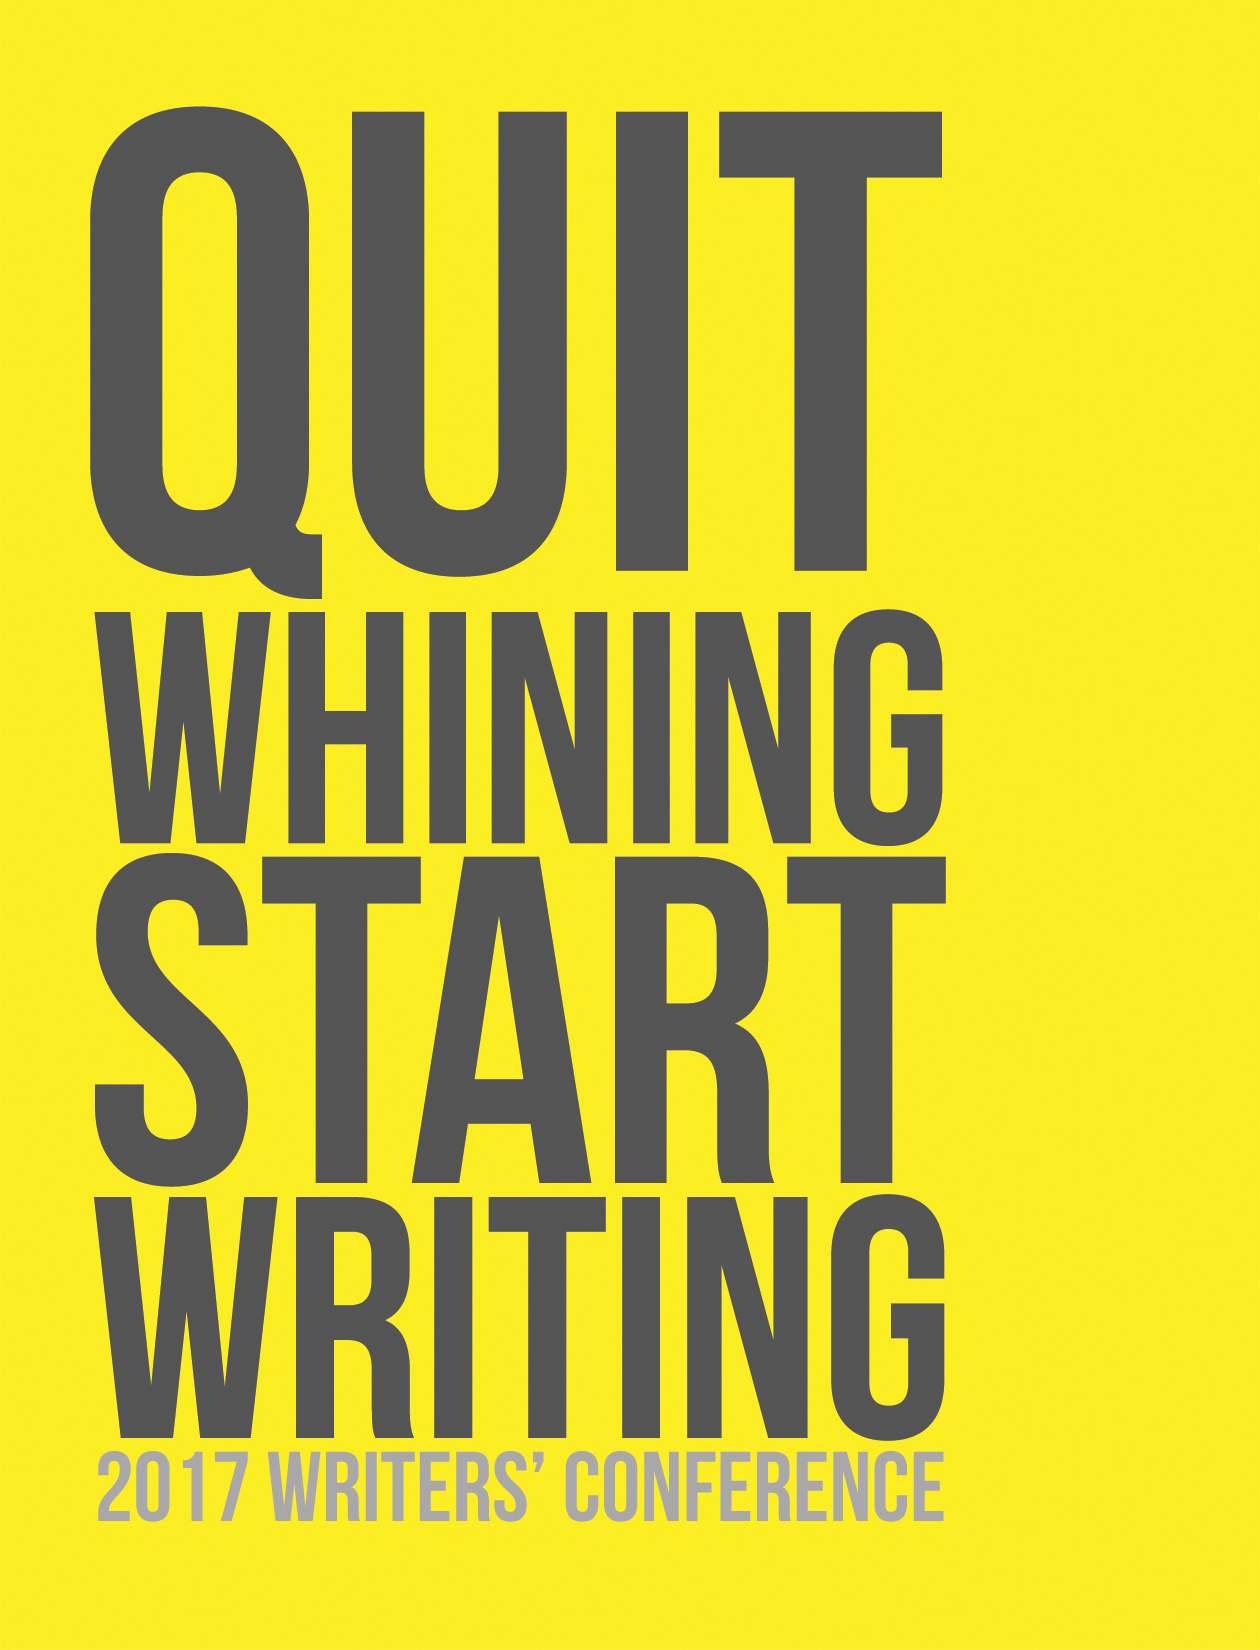 Quit Whining Start Writing